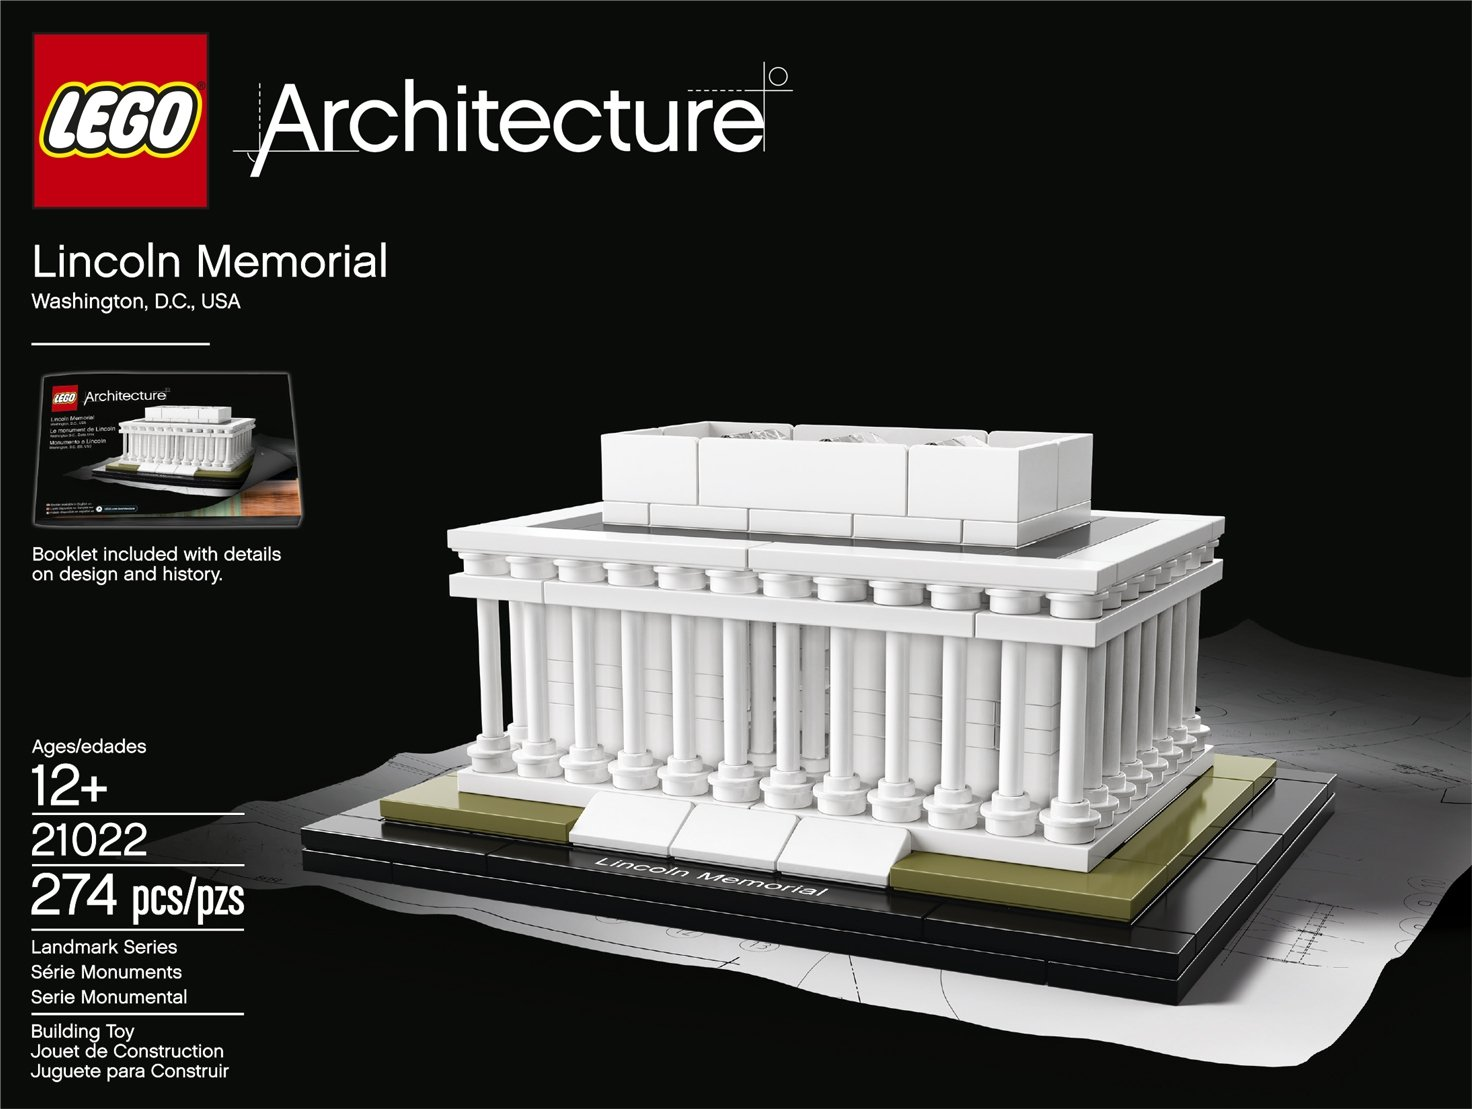 Amazon.com: LEGO Architecture 21022 Lincoln Memorial Model Kit: Toys & Games